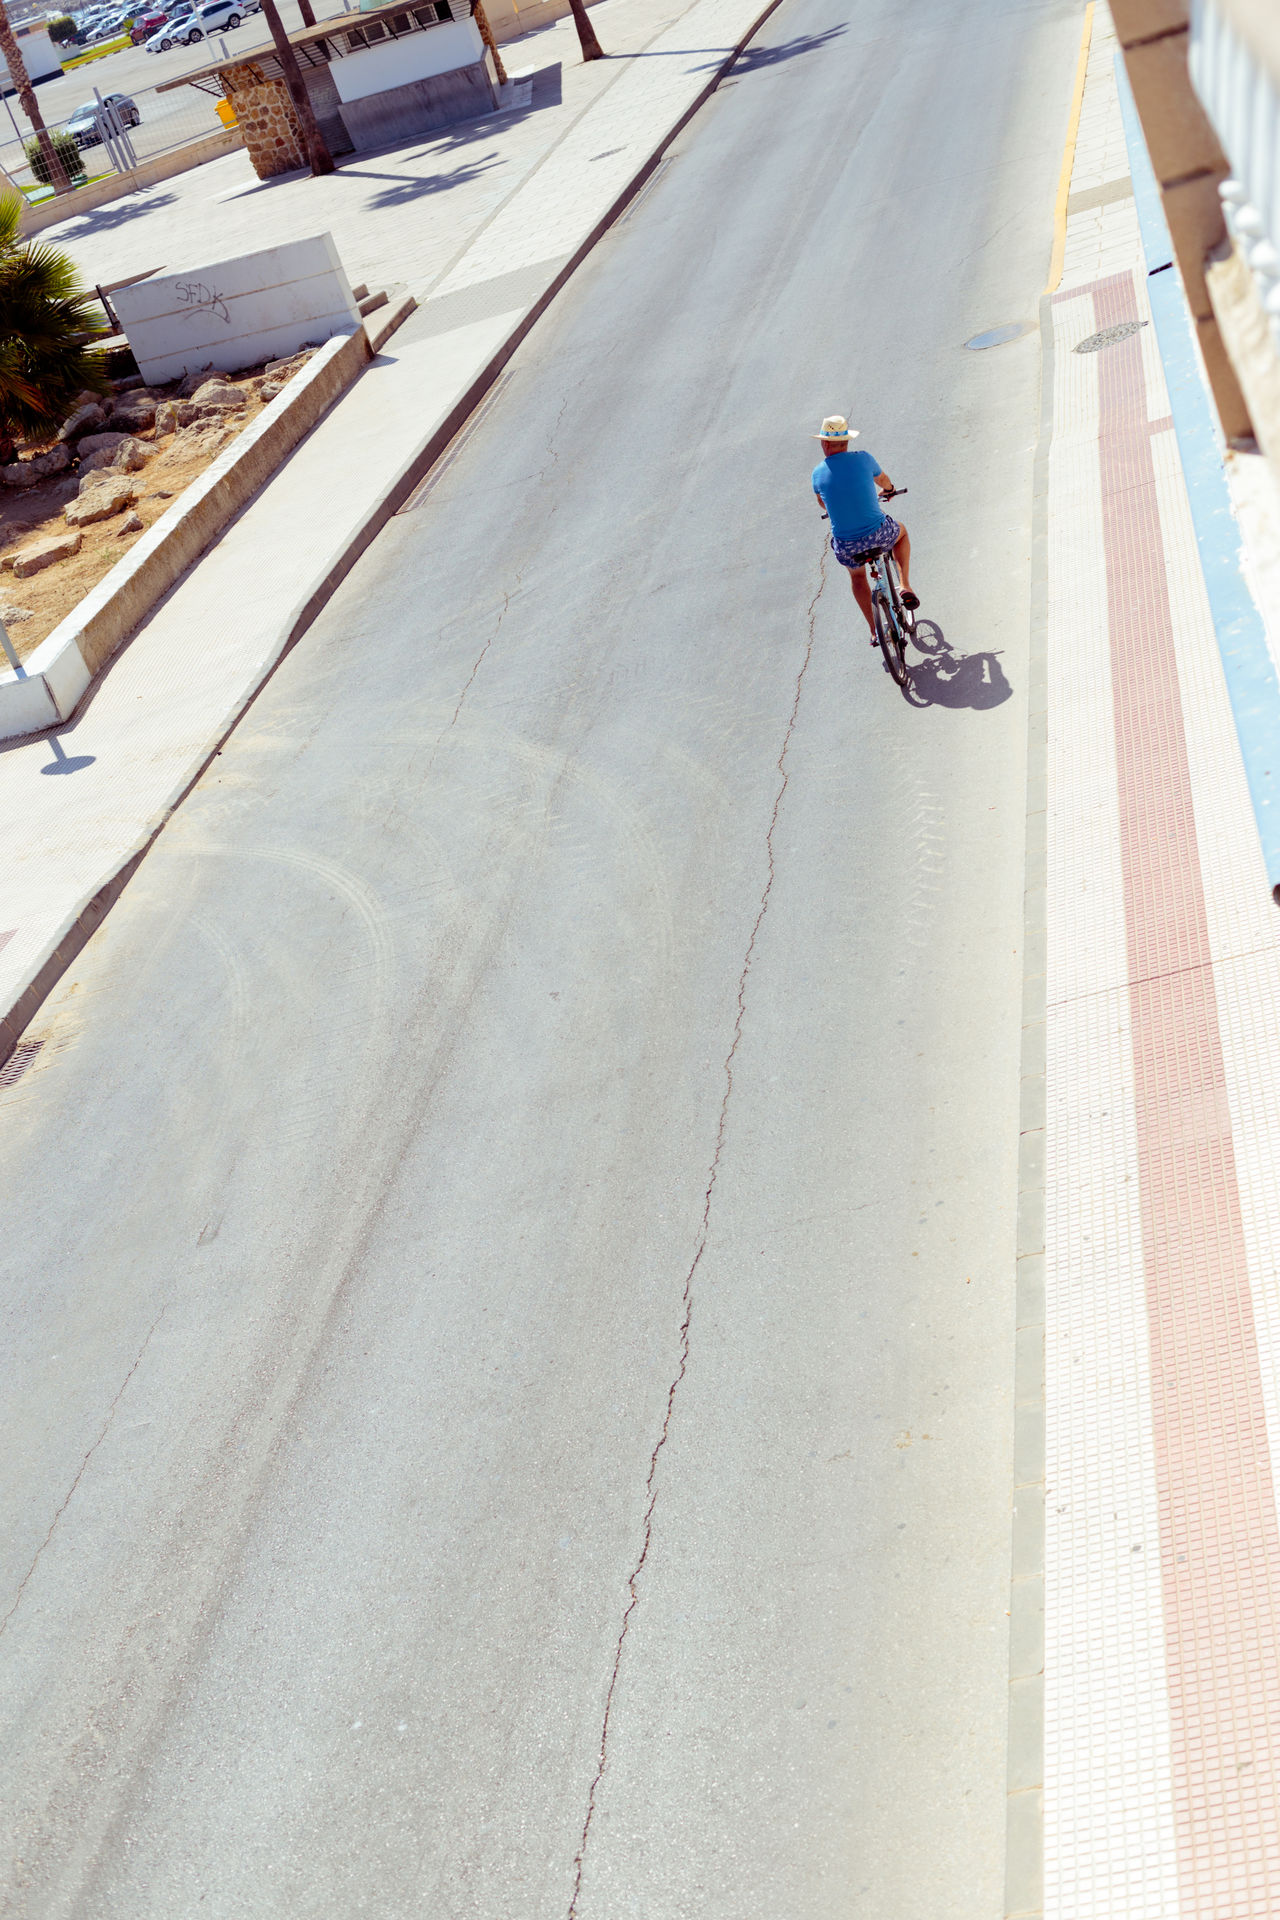 Alone cyclist on the road. Aerial View Bicycle Cycling Day Lifestyle Men Motion Old One Person Outdoors Retro Road Summer Top View Transportation Travel Urban Urban Geometry Vintage Vintage Photo